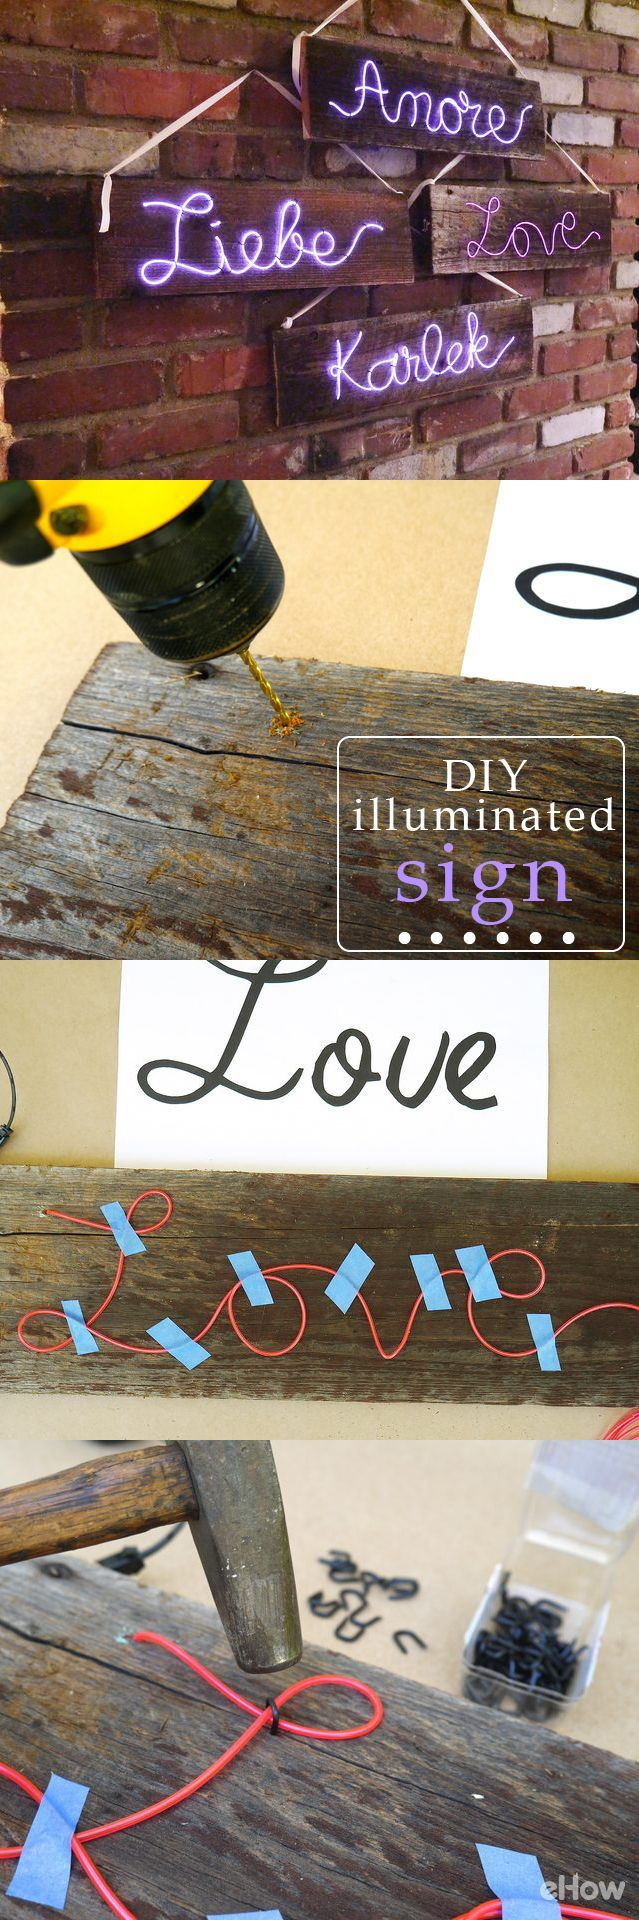 How to Make Your Own Illuminated Sign | Anniversary parties ...